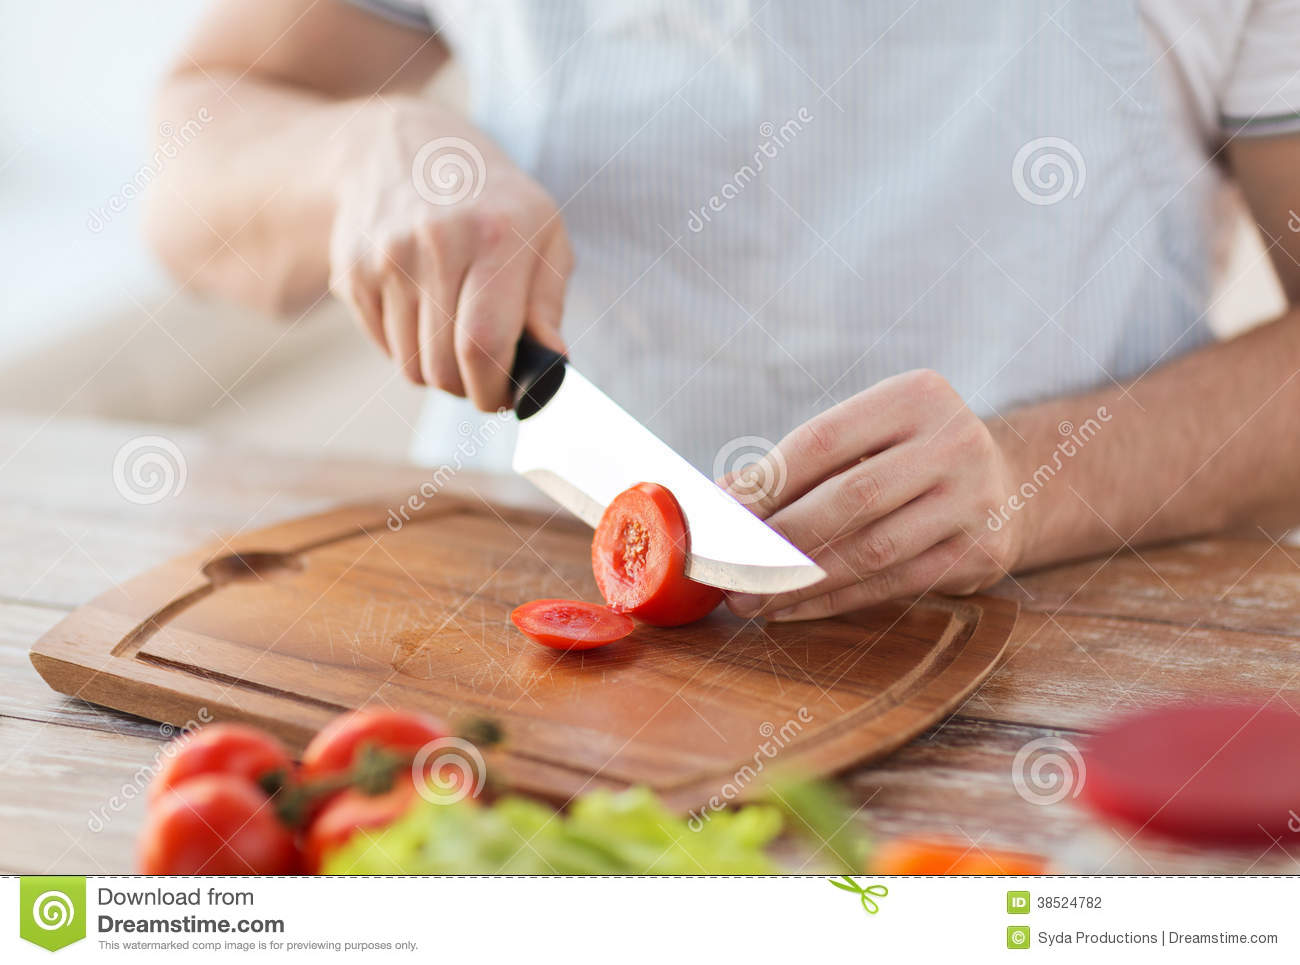 Male Hand Cutting Tomato On Board With Knife Stock Photo ...